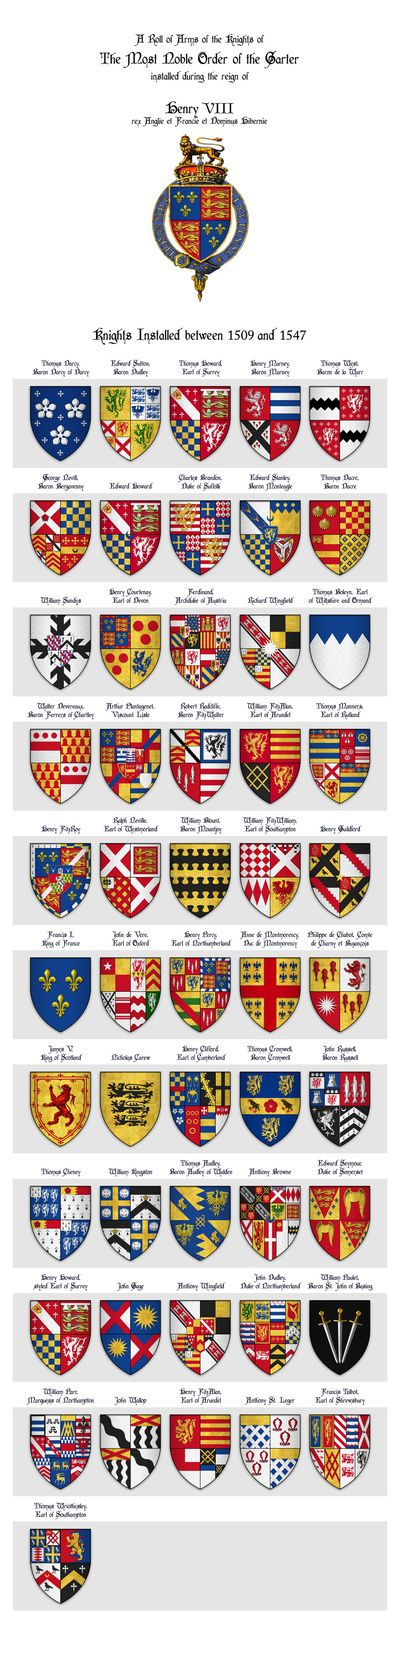 Roll of Arms - Knights of the Garter Installed during the Reign of King Henry VIII Art Print